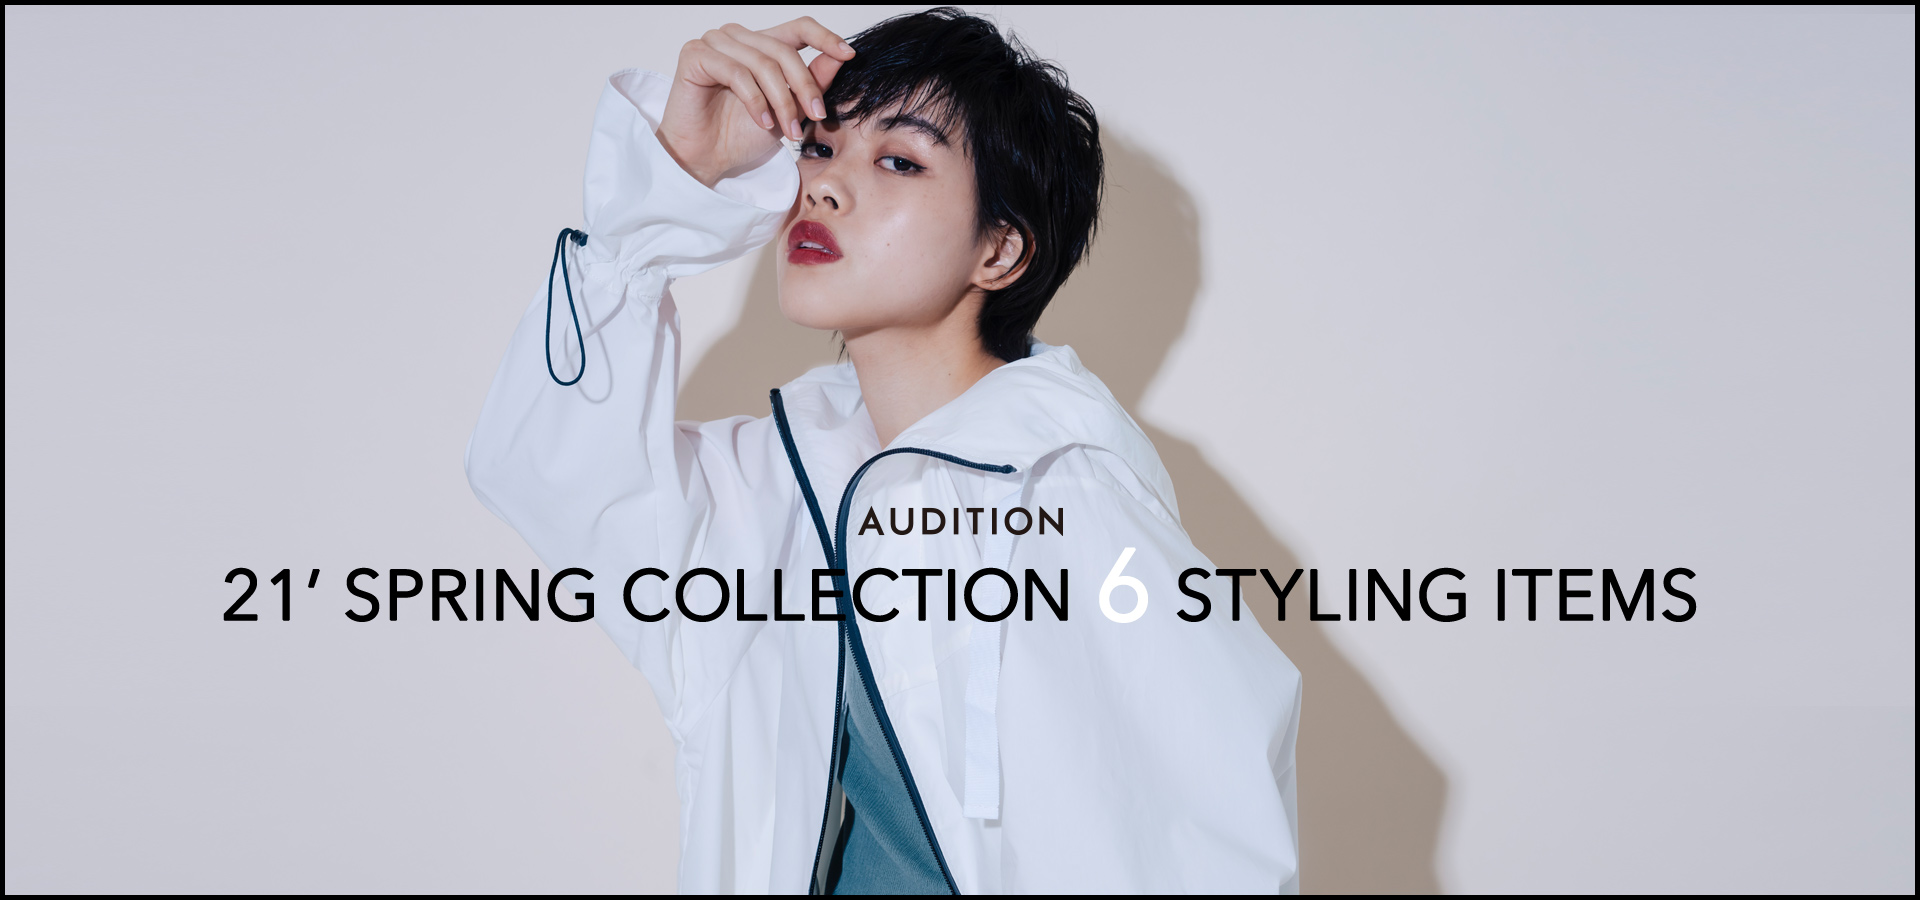 AUDITION 21'SPRING COLLECTION 6STYLING ITEMS ALL